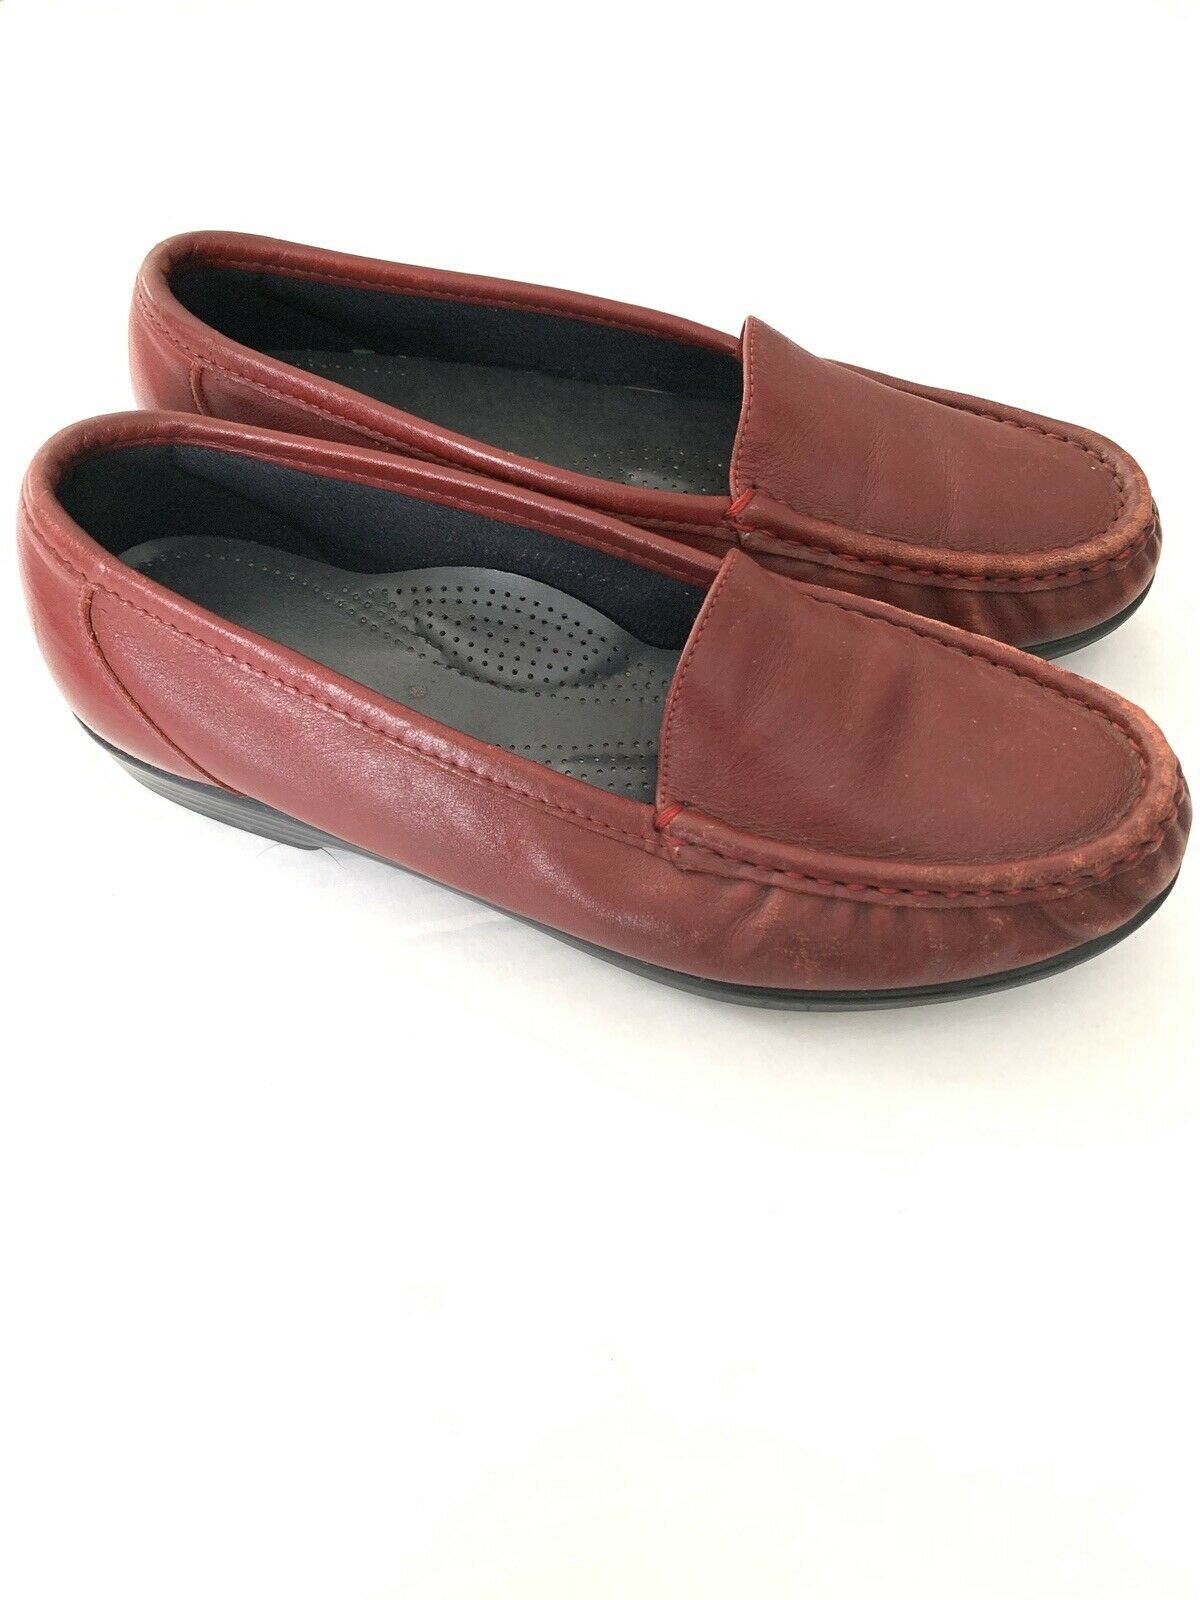 SAS Womens Tripad Comfort Loafer Moc Red Leather Slip On shoes Sz 7